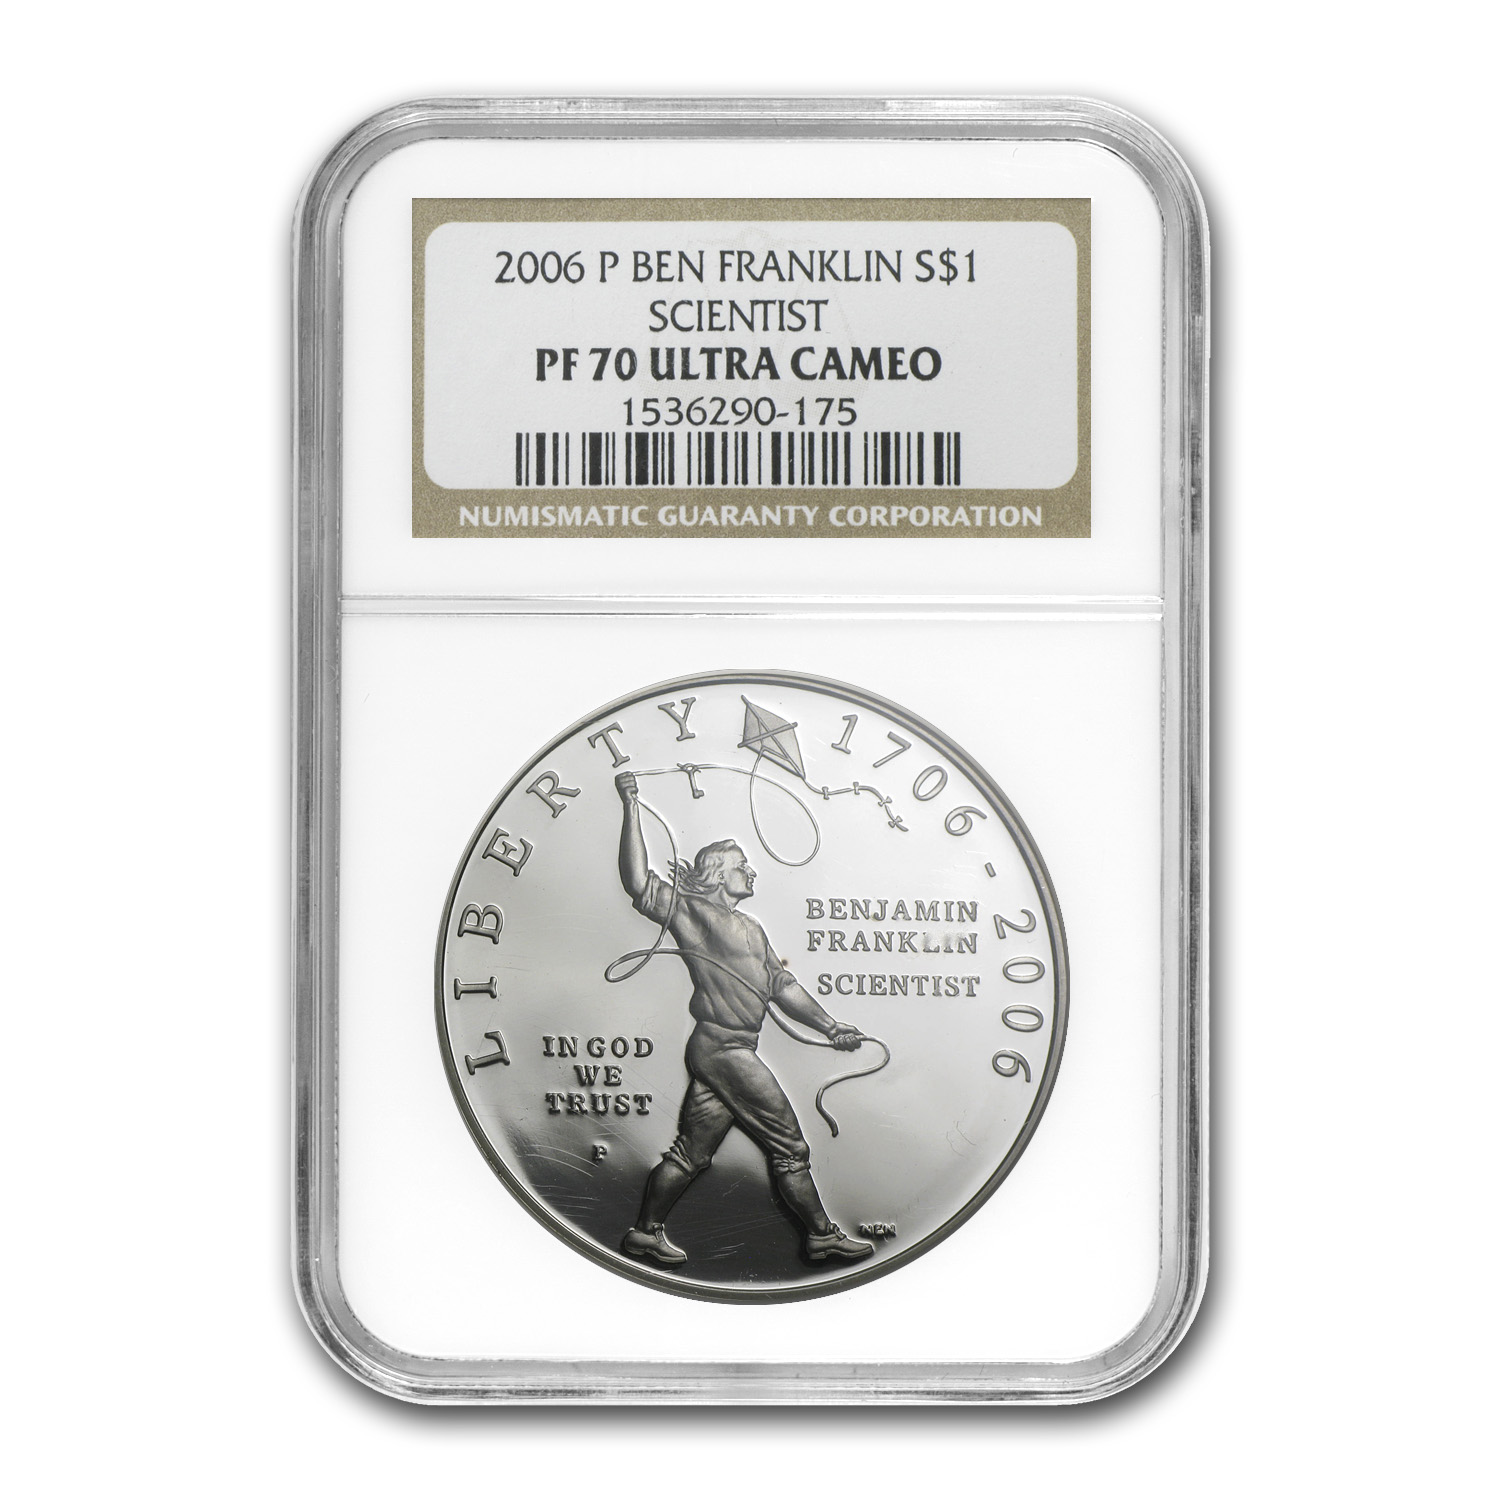 2006-P Ben Franklin Scientist $1 Silver Commem PF-70 NGC